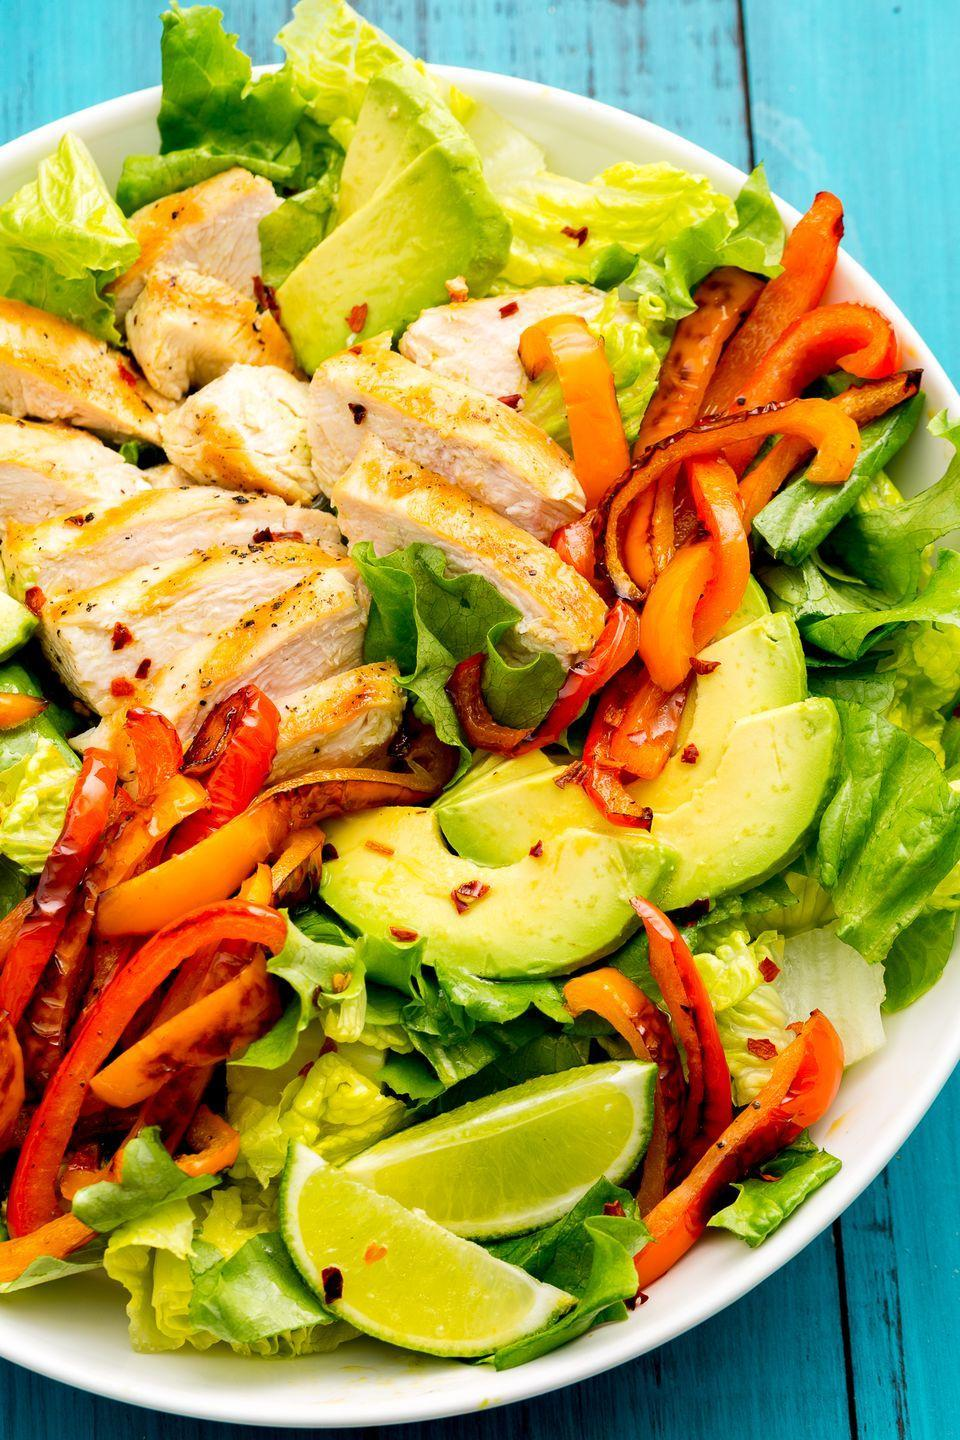 """<p>All the Tex-Mex flavors you love in one good-for-you salad.</p><p>Get the recipe from <a href=""""https://www.delish.com/cooking/recipe-ideas/recipes/a47332/fajita-chicken-salad-recipe/"""" rel=""""nofollow noopener"""" target=""""_blank"""" data-ylk=""""slk:Delish"""" class=""""link rapid-noclick-resp"""">Delish</a>.</p>"""